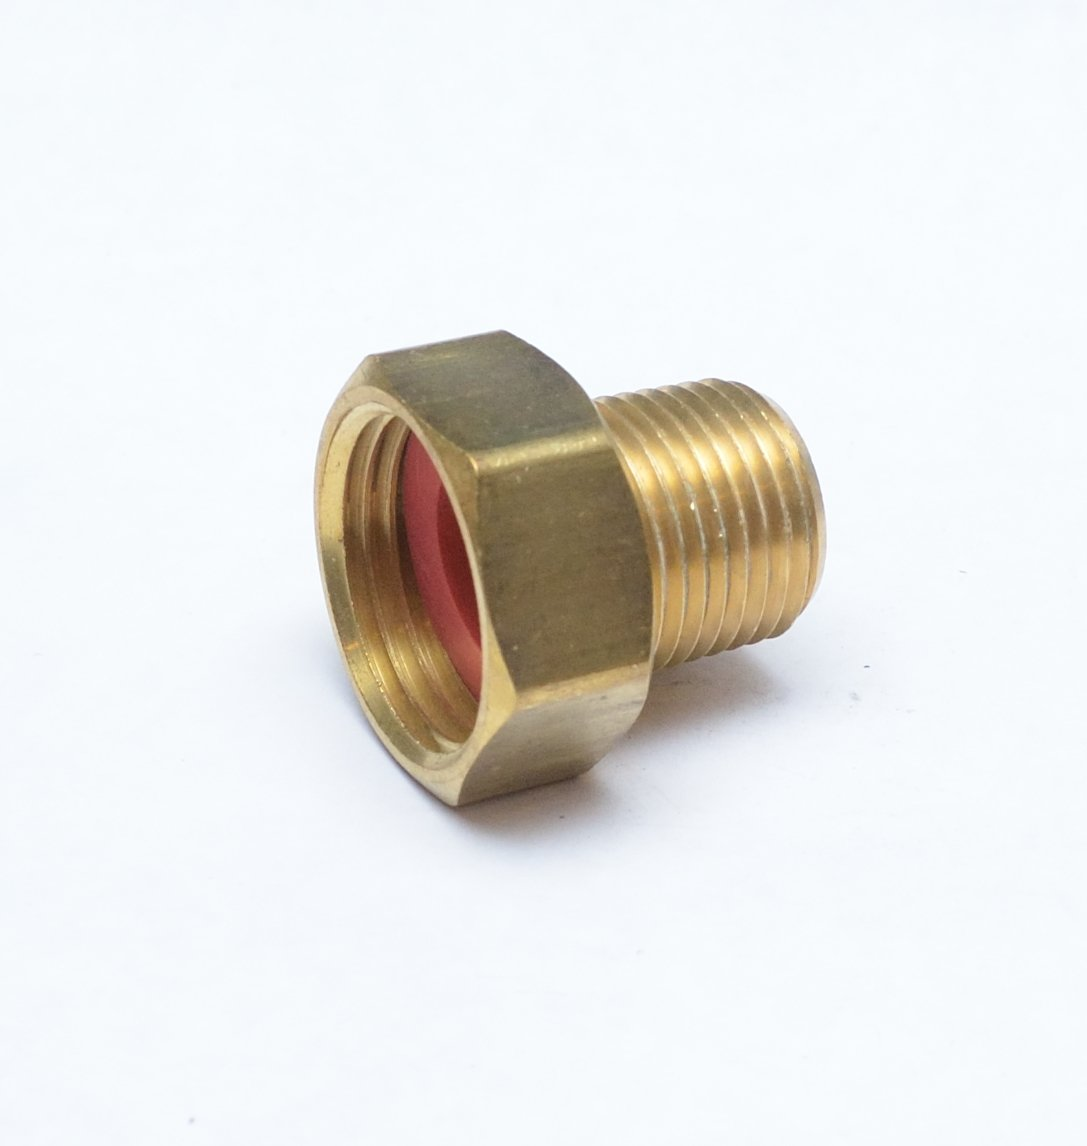 """FASPARTS 1/2"""" Male NPT MPT MIP to 3/4"""" Female GHT Garden Hose Thread Adapter Brass Fitting Fuel/Air/Water/Boat/Gas/Oil WOG House/Boat/Lawn/Power Wash/Irrigation"""